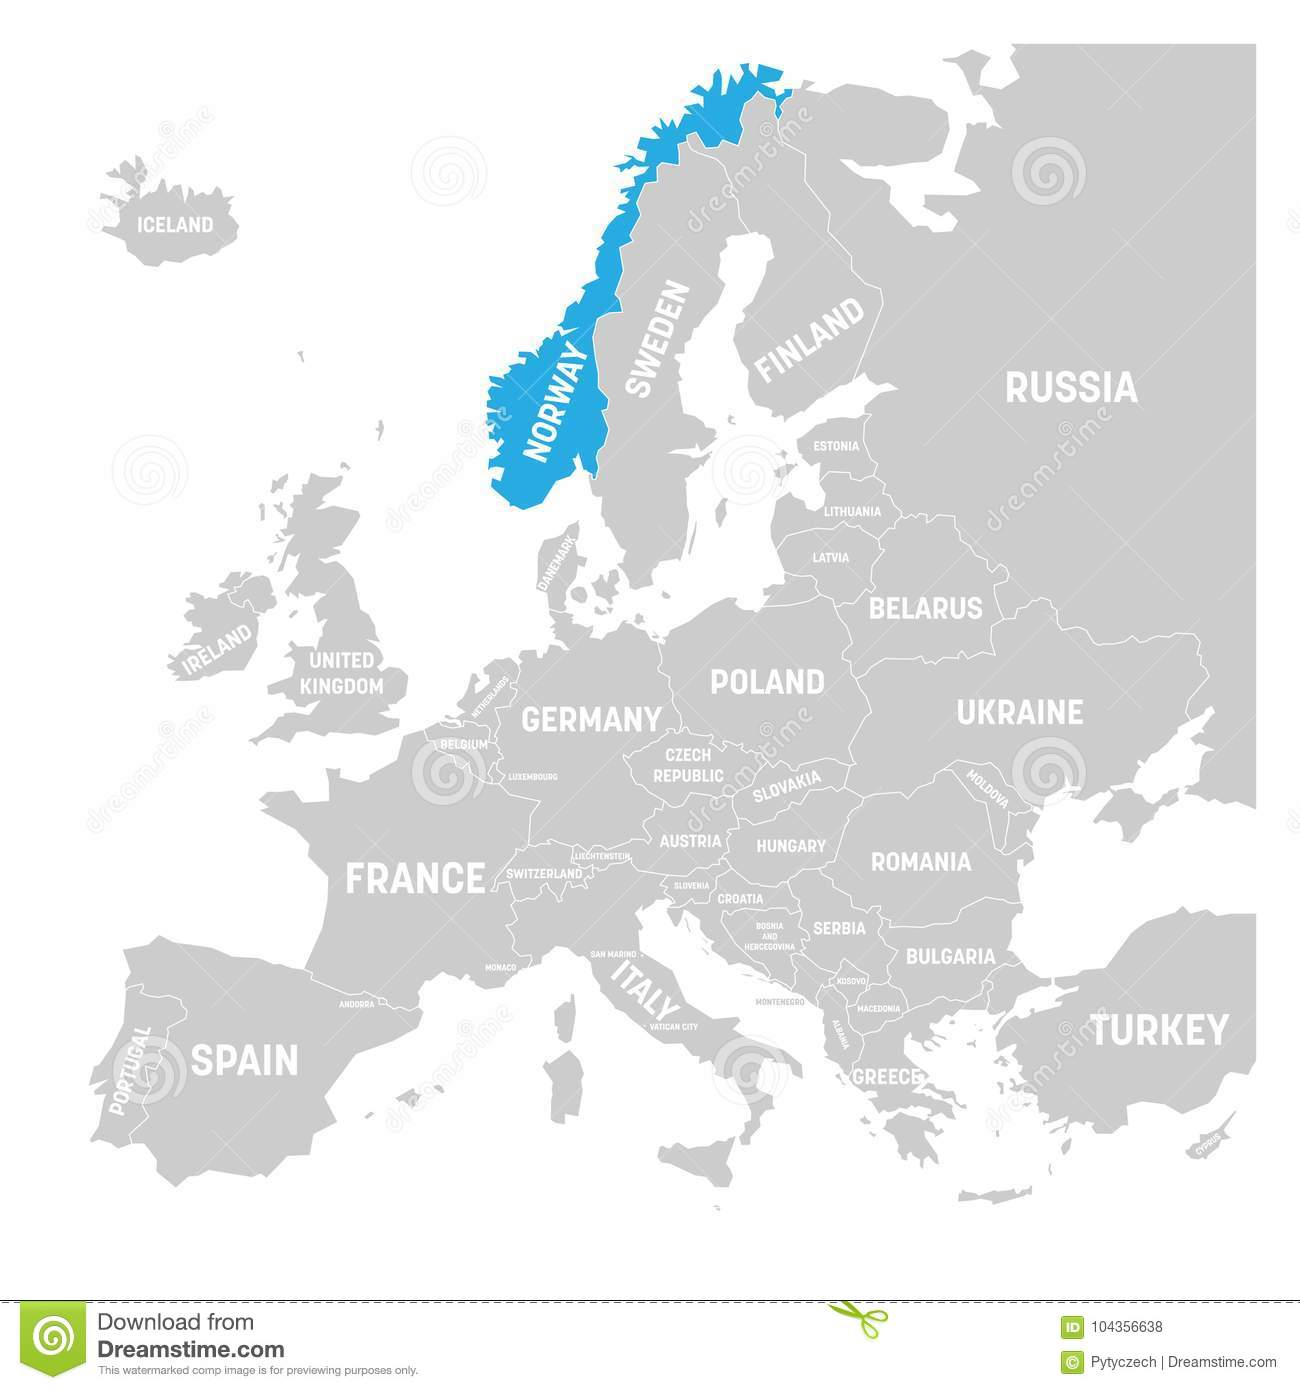 Norway On Map Of Europe.Norway Marked By Blue In Grey Political Map Of Europe Vector